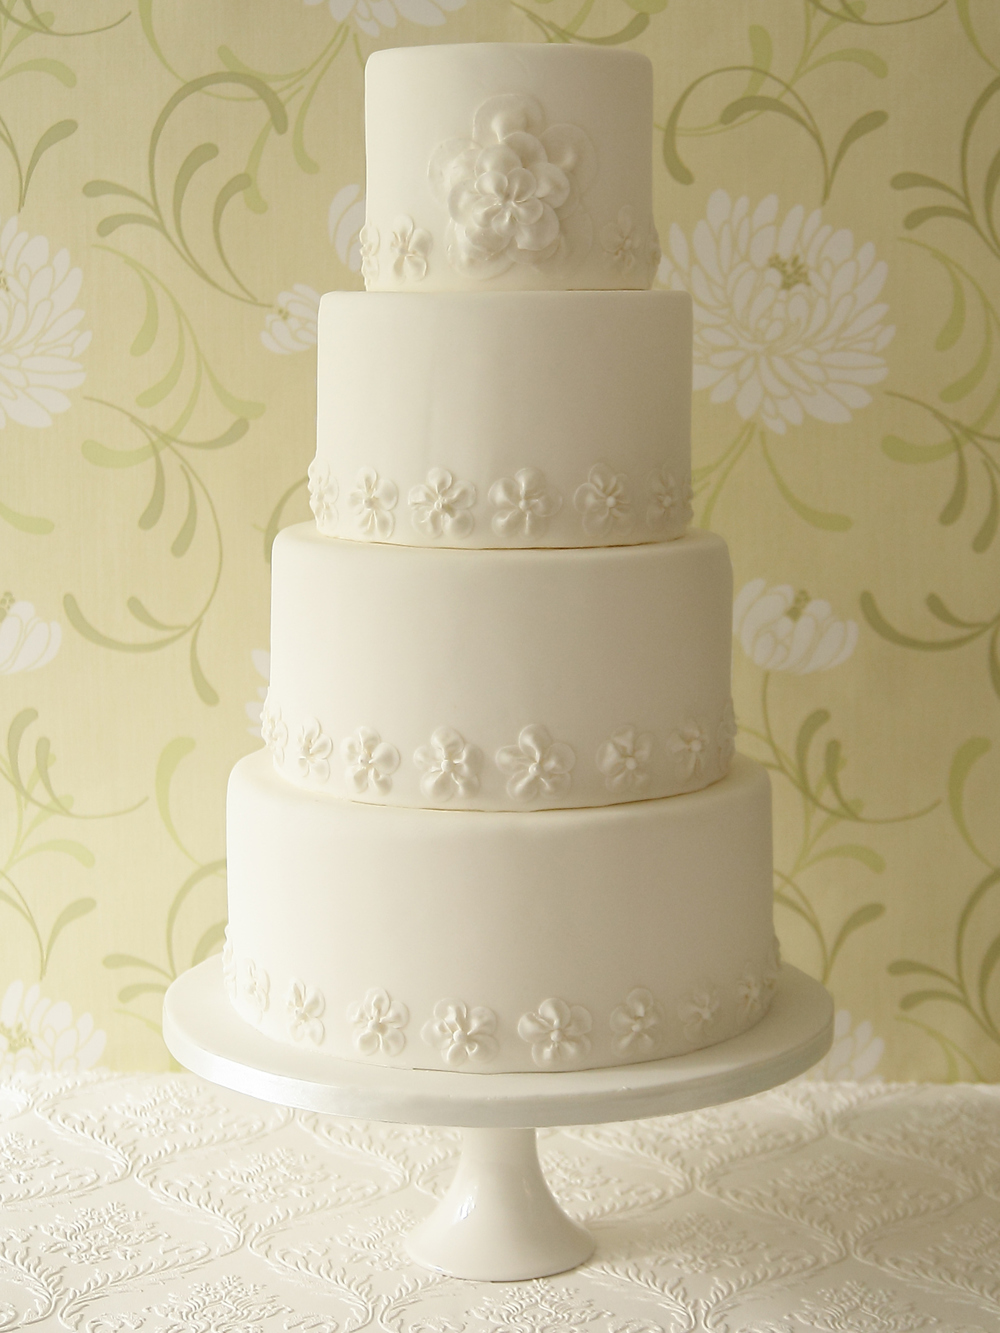 Cetelia wedding cake